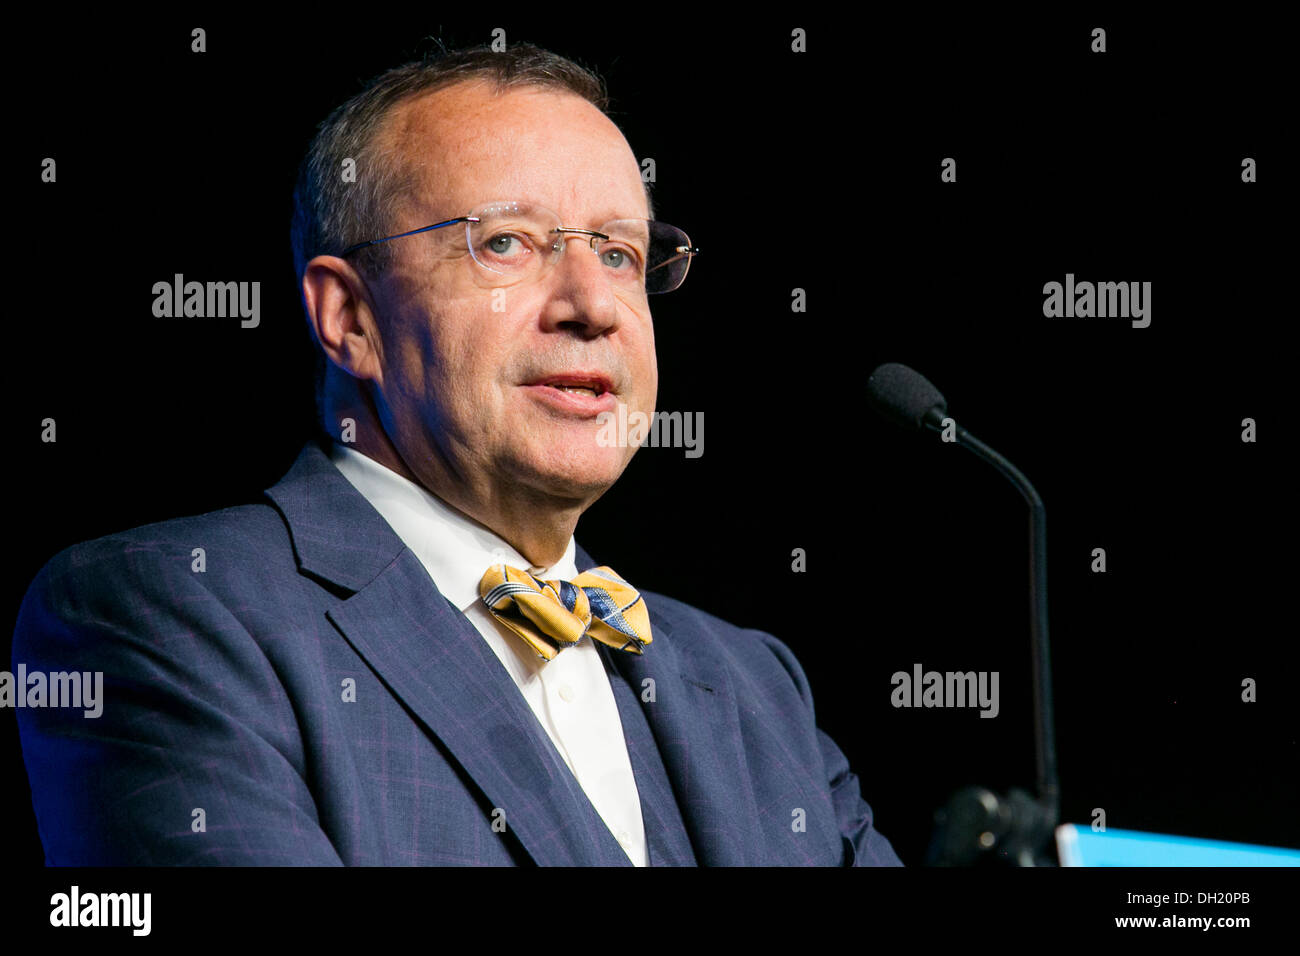 Toomas Hendrik Ilves, the President Of Estonia.  Stock Photo